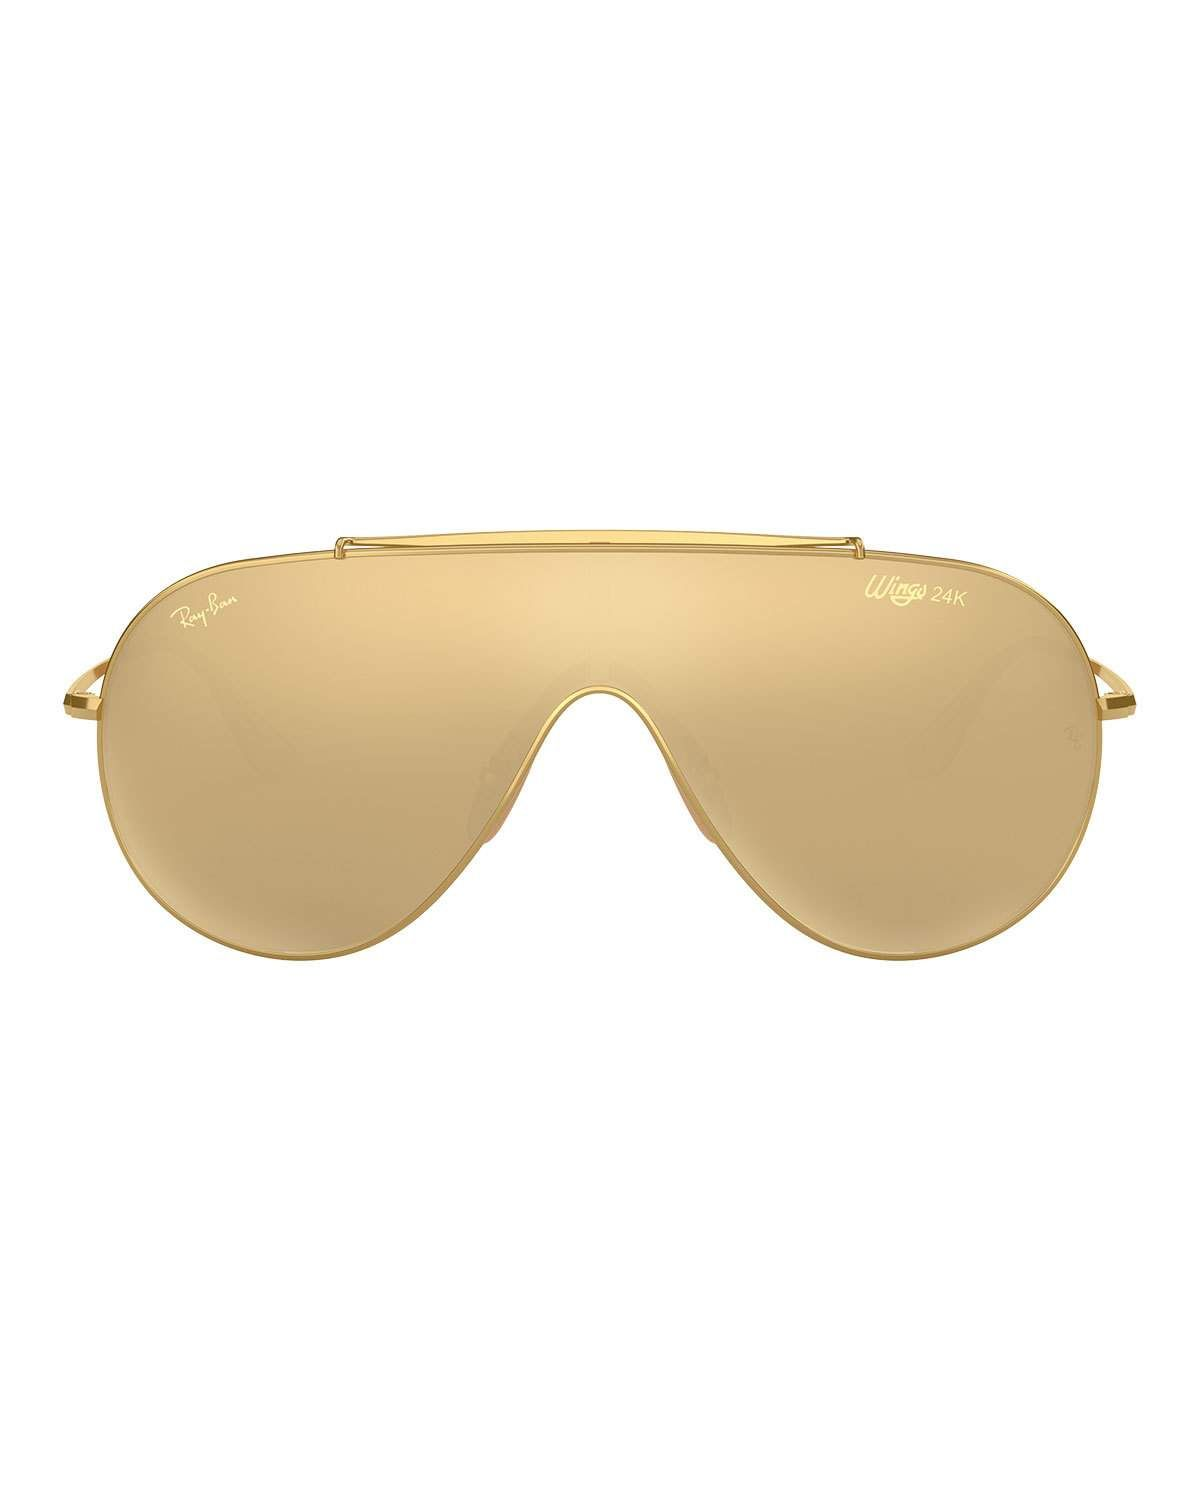 e748a02c35 Ray-Ban Men s Golden Wings Shield Sunglasses